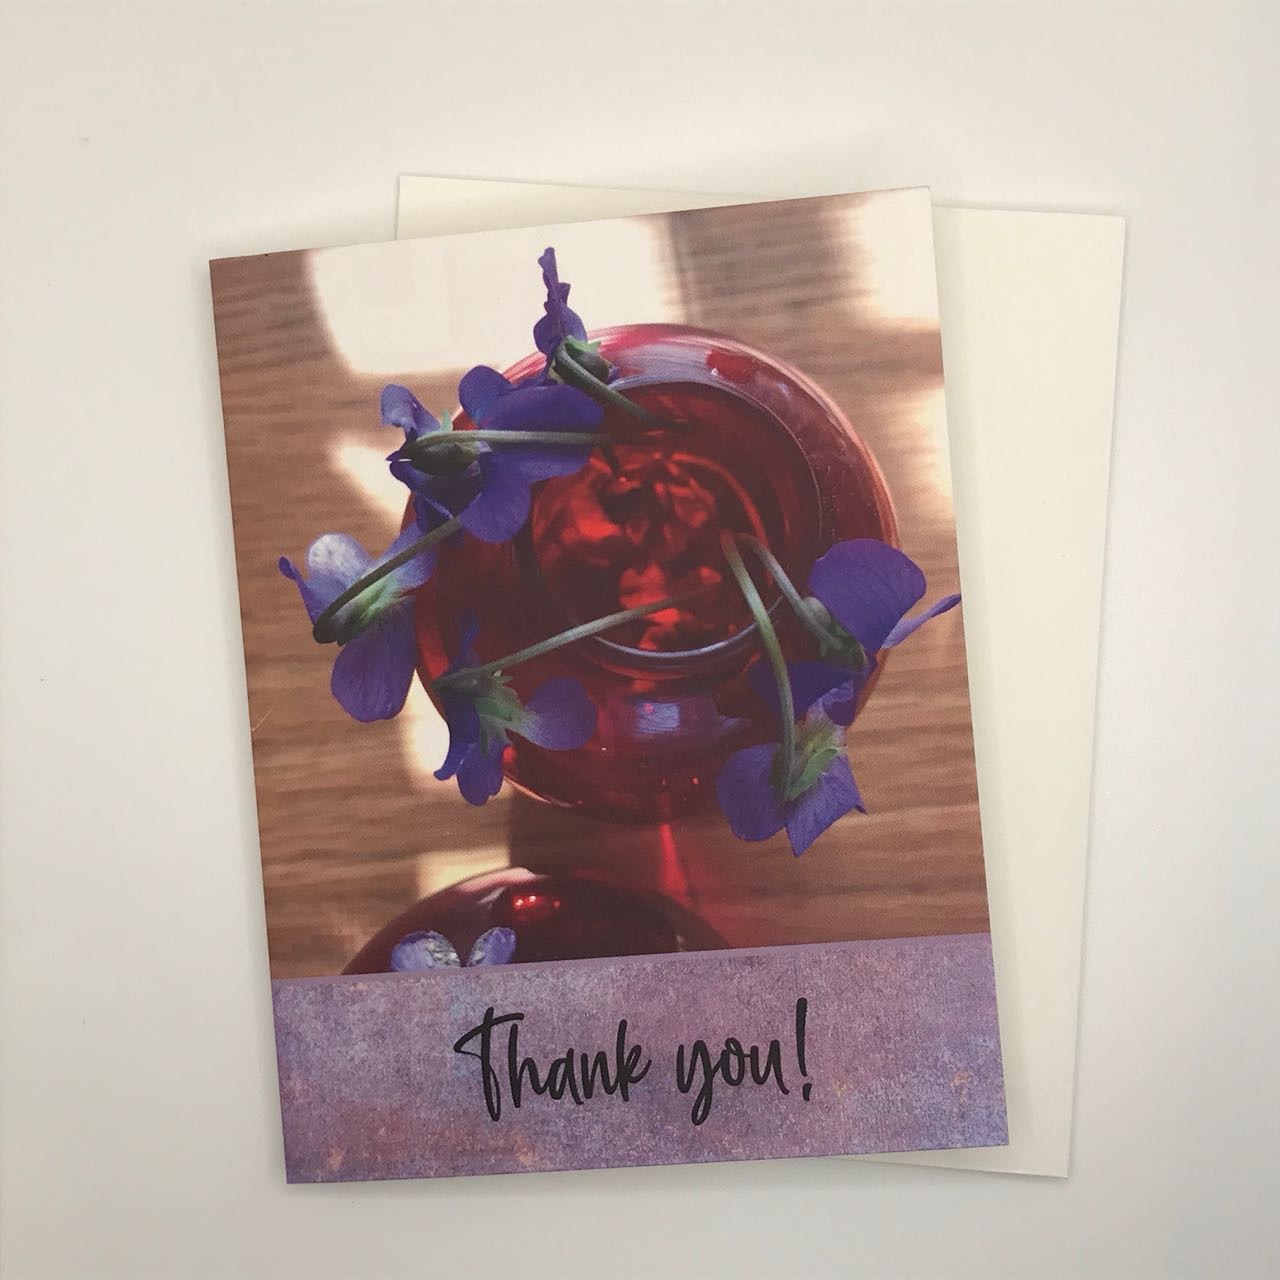 Thank You Card with Wild Violets in Red Vase